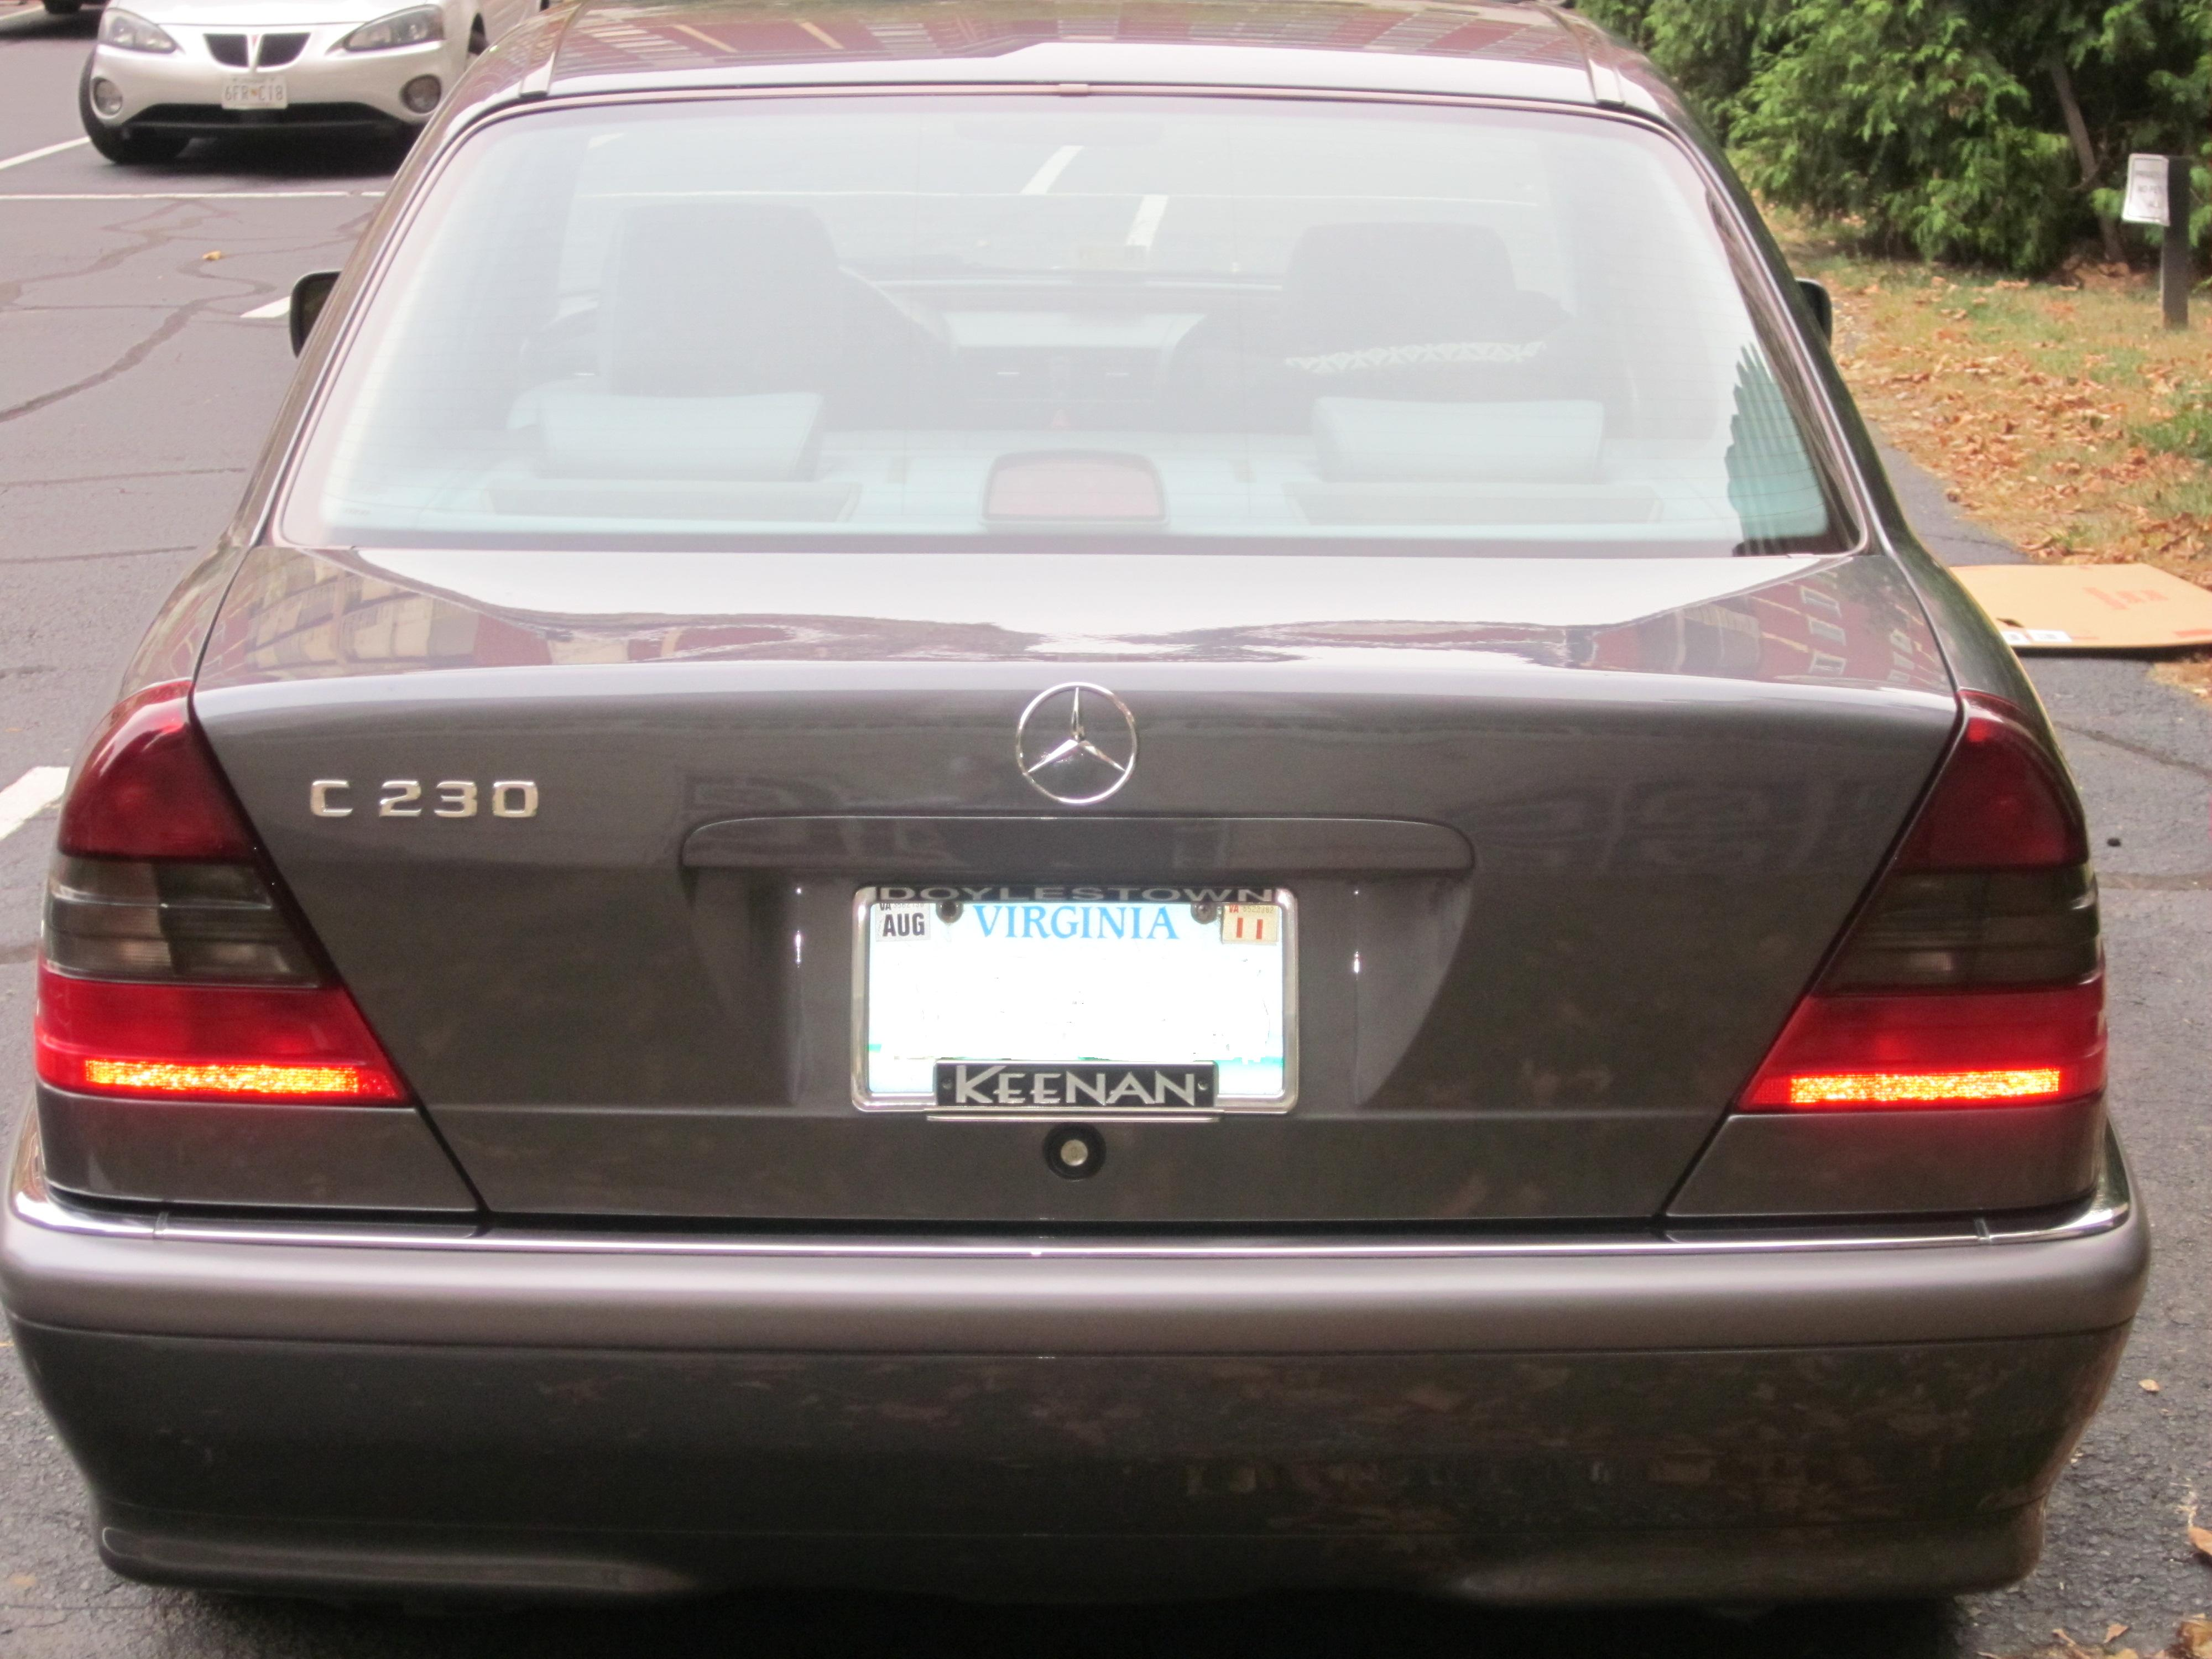 C230 archives german cars for sale blog for Mercedes benz arlington service center